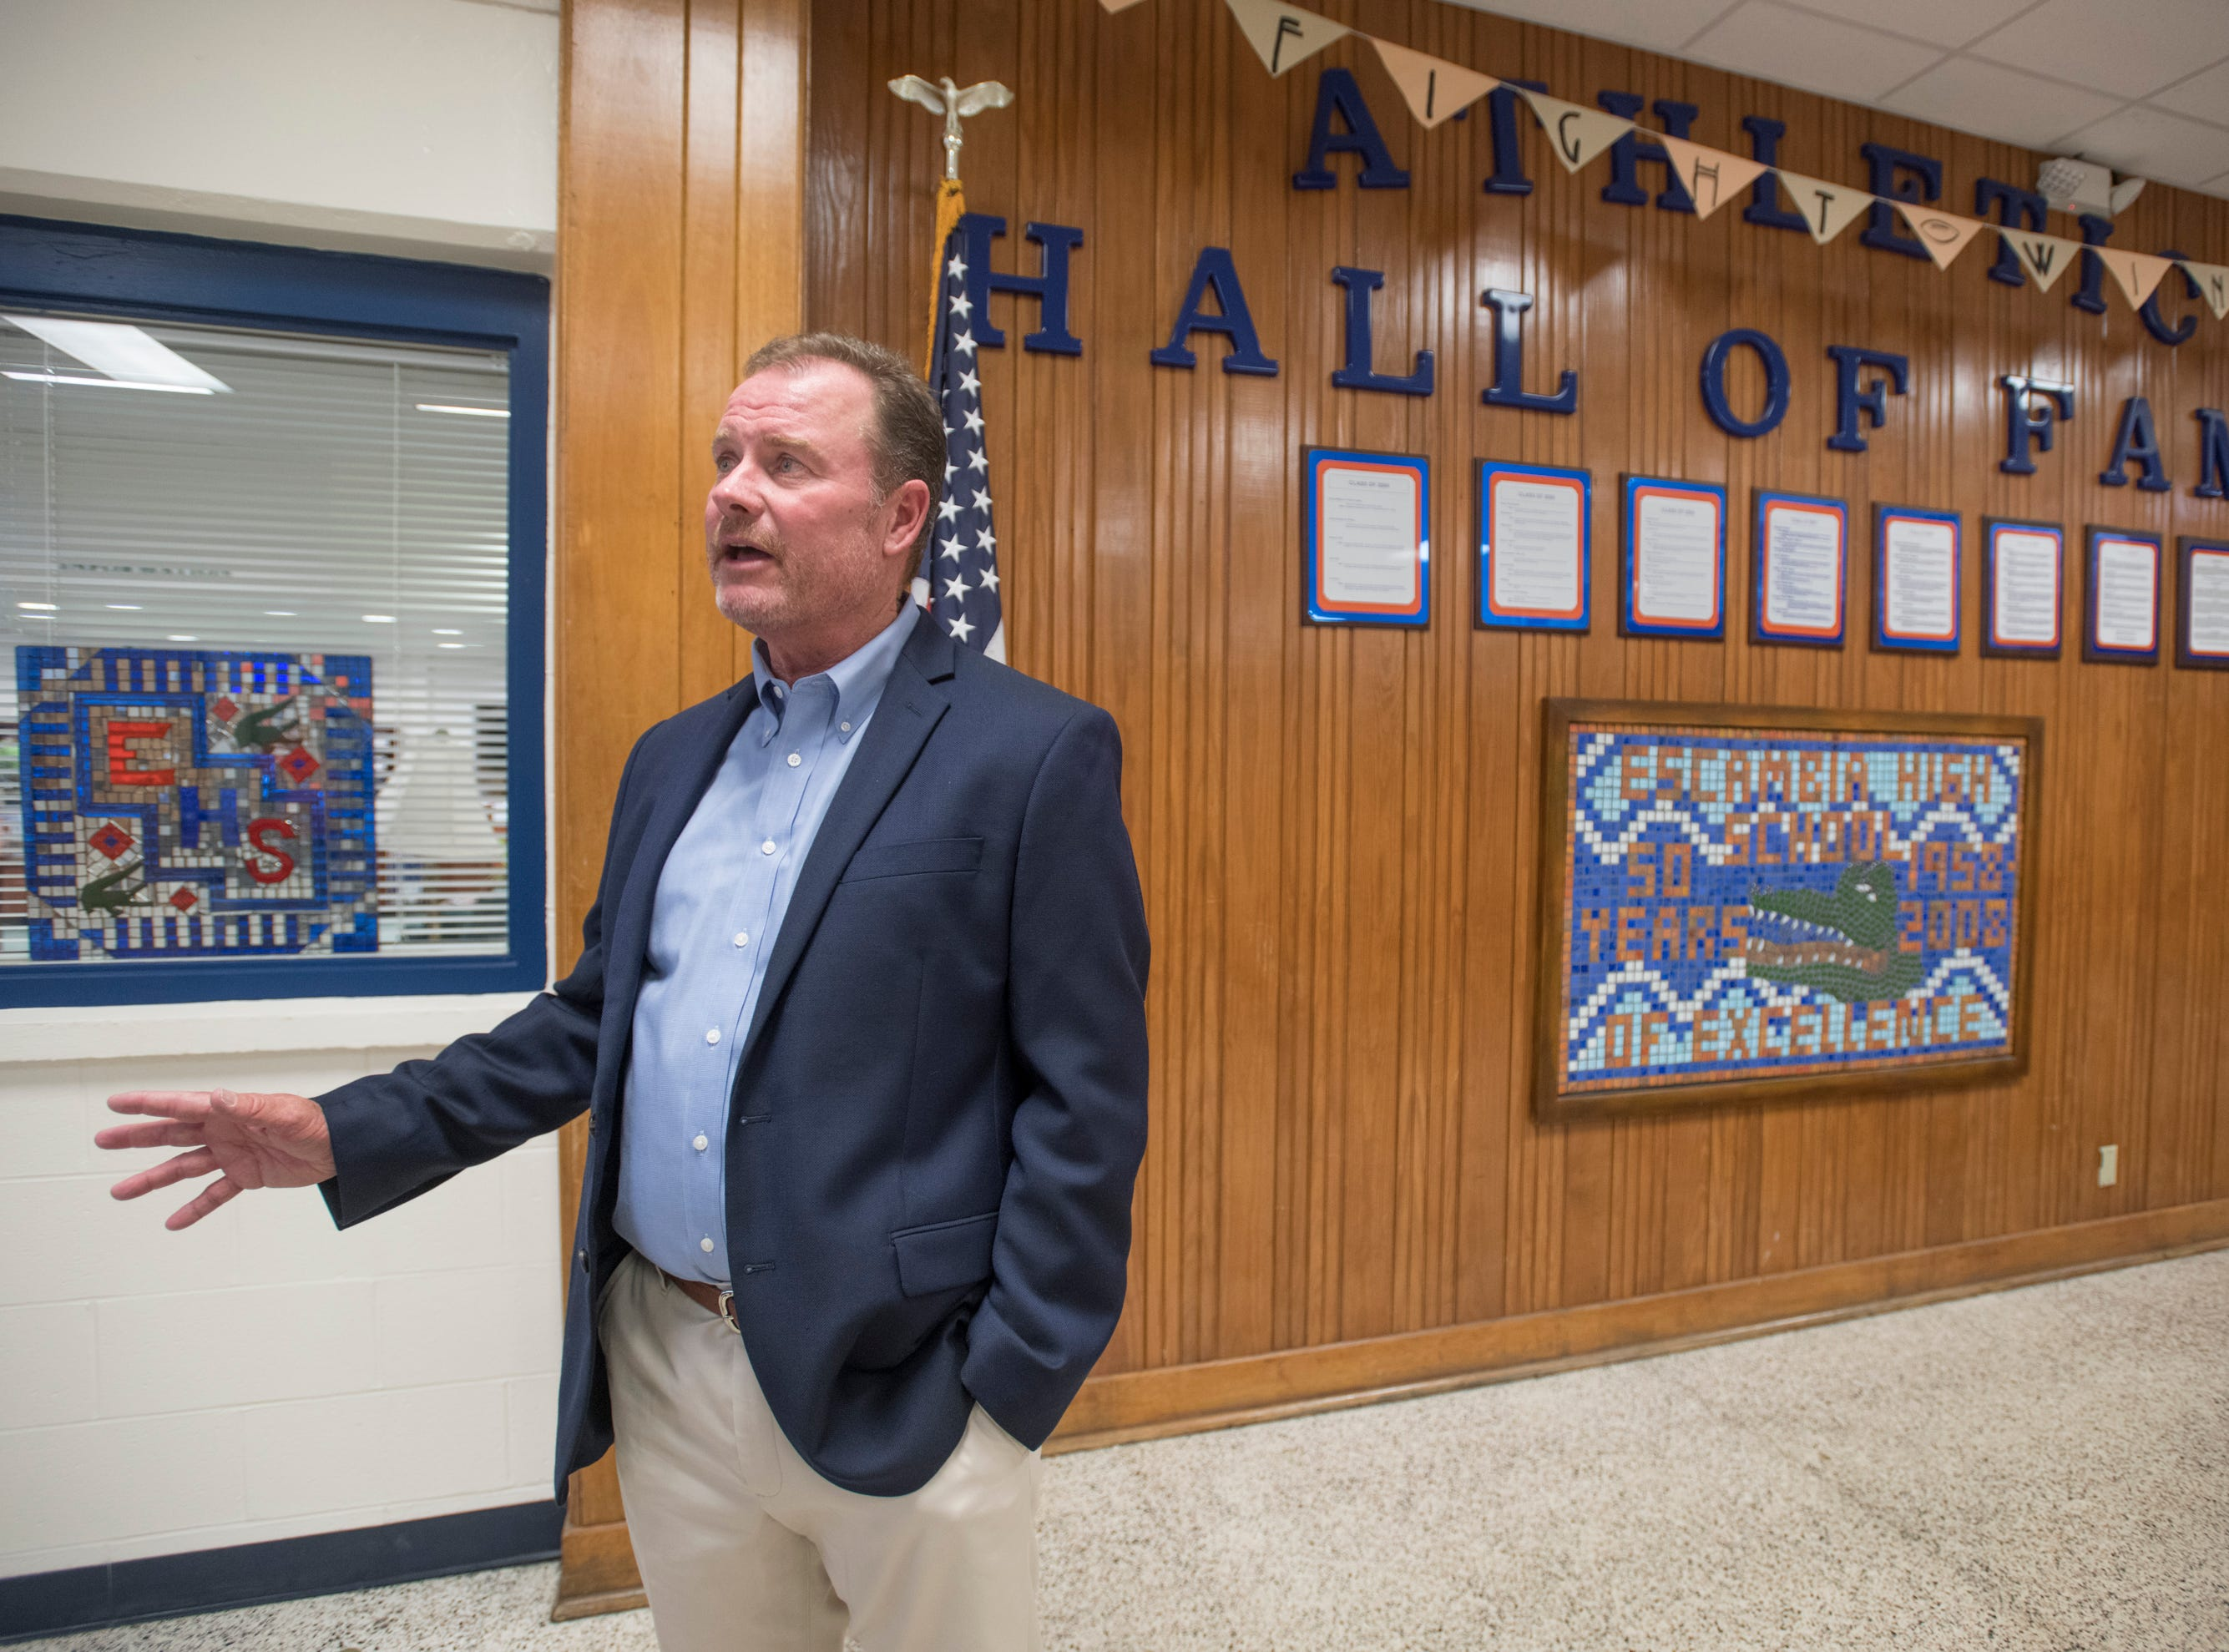 Hall of Fame class of 2018-2019 inductee Joe Durant talks about his career at Escambia High School in Pensacola on March 14, 2019.